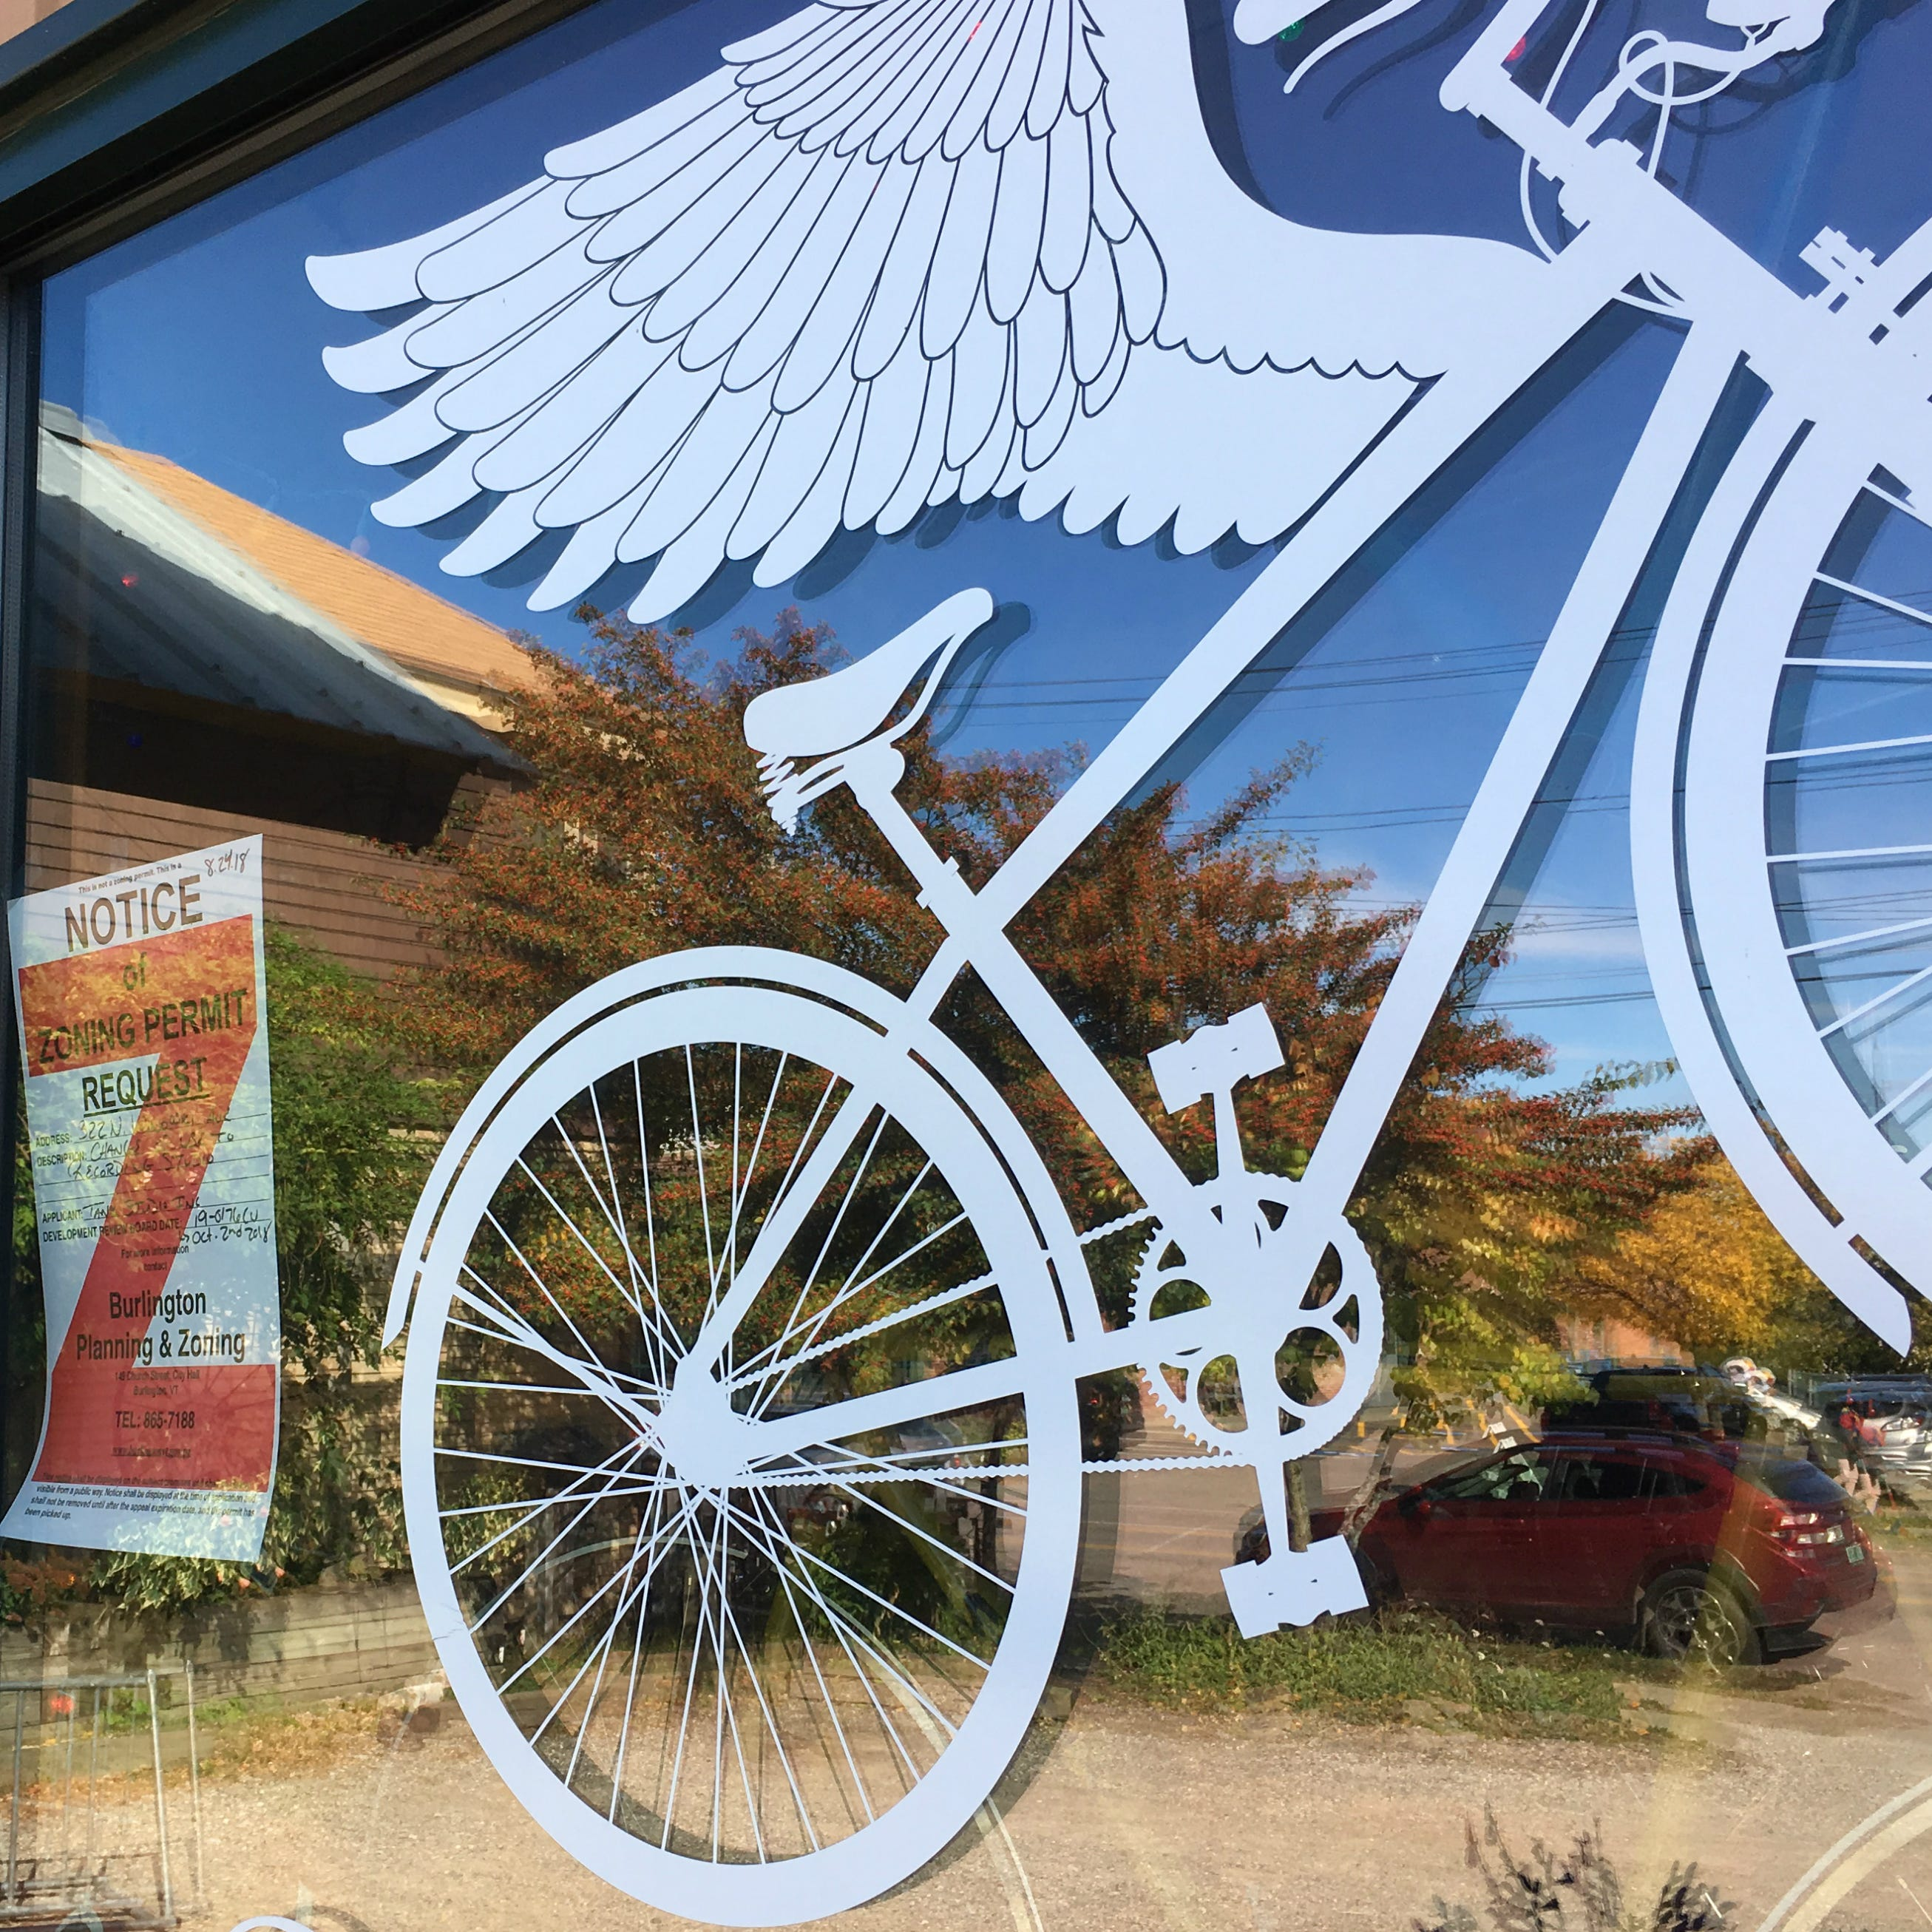 Old Spokes Home bike shop moving, to be replaced by recording studio